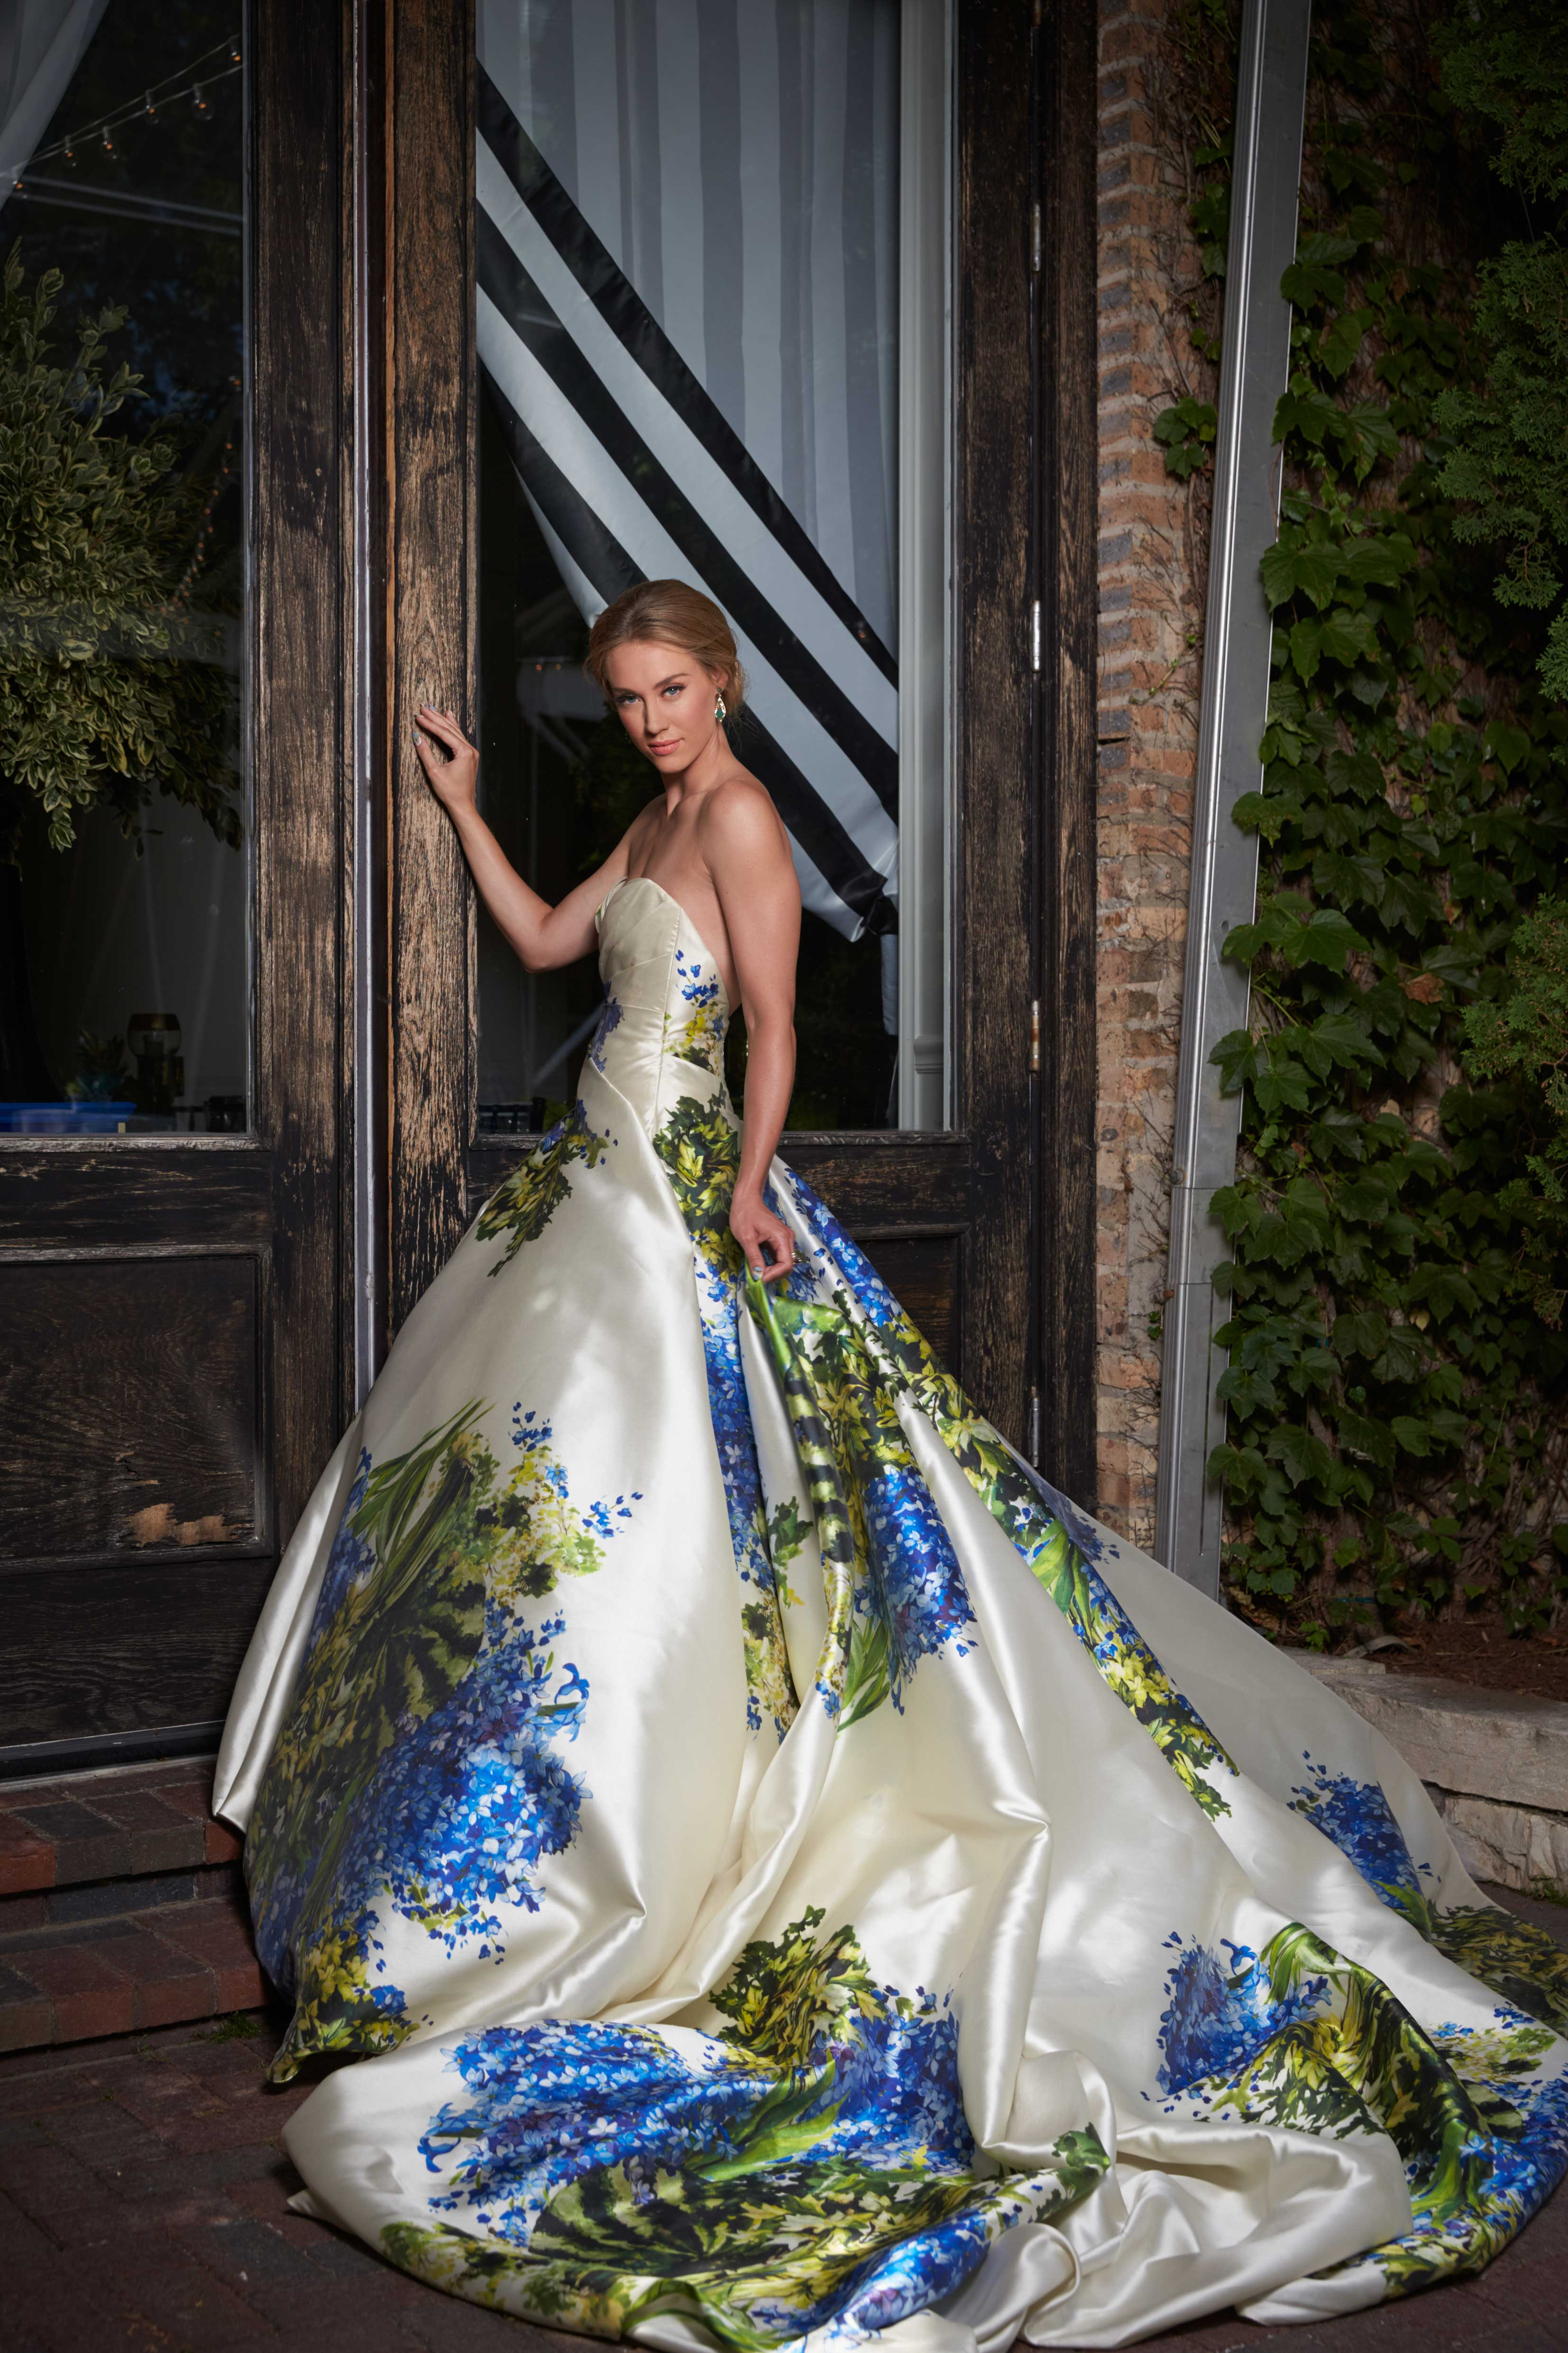 pantone color of the year 2020 classic blue wedding ideas blue details on wedding dress